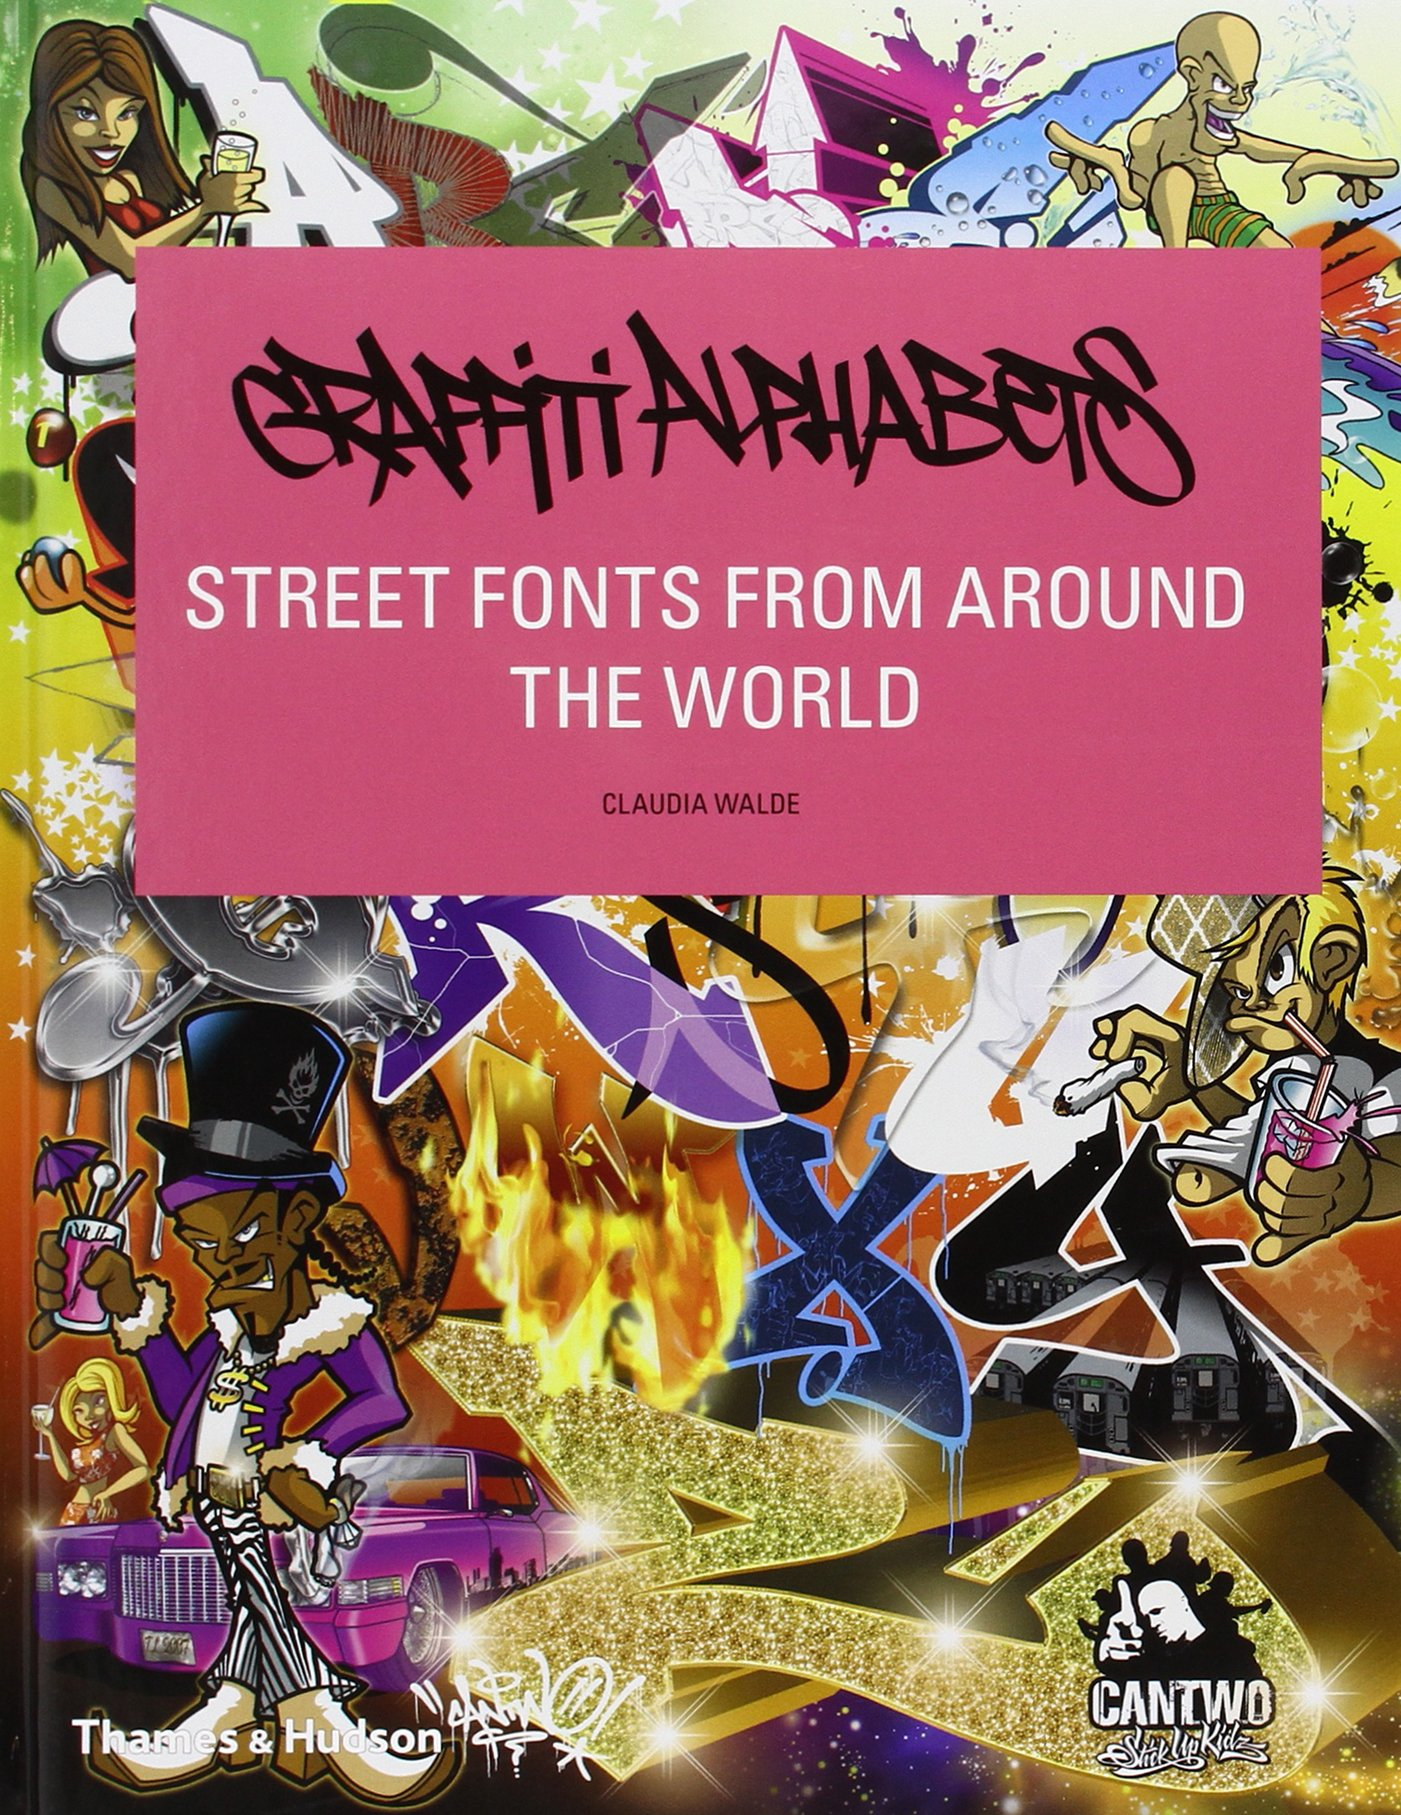 Graffiti Alphabet Street Fonts From Around The World